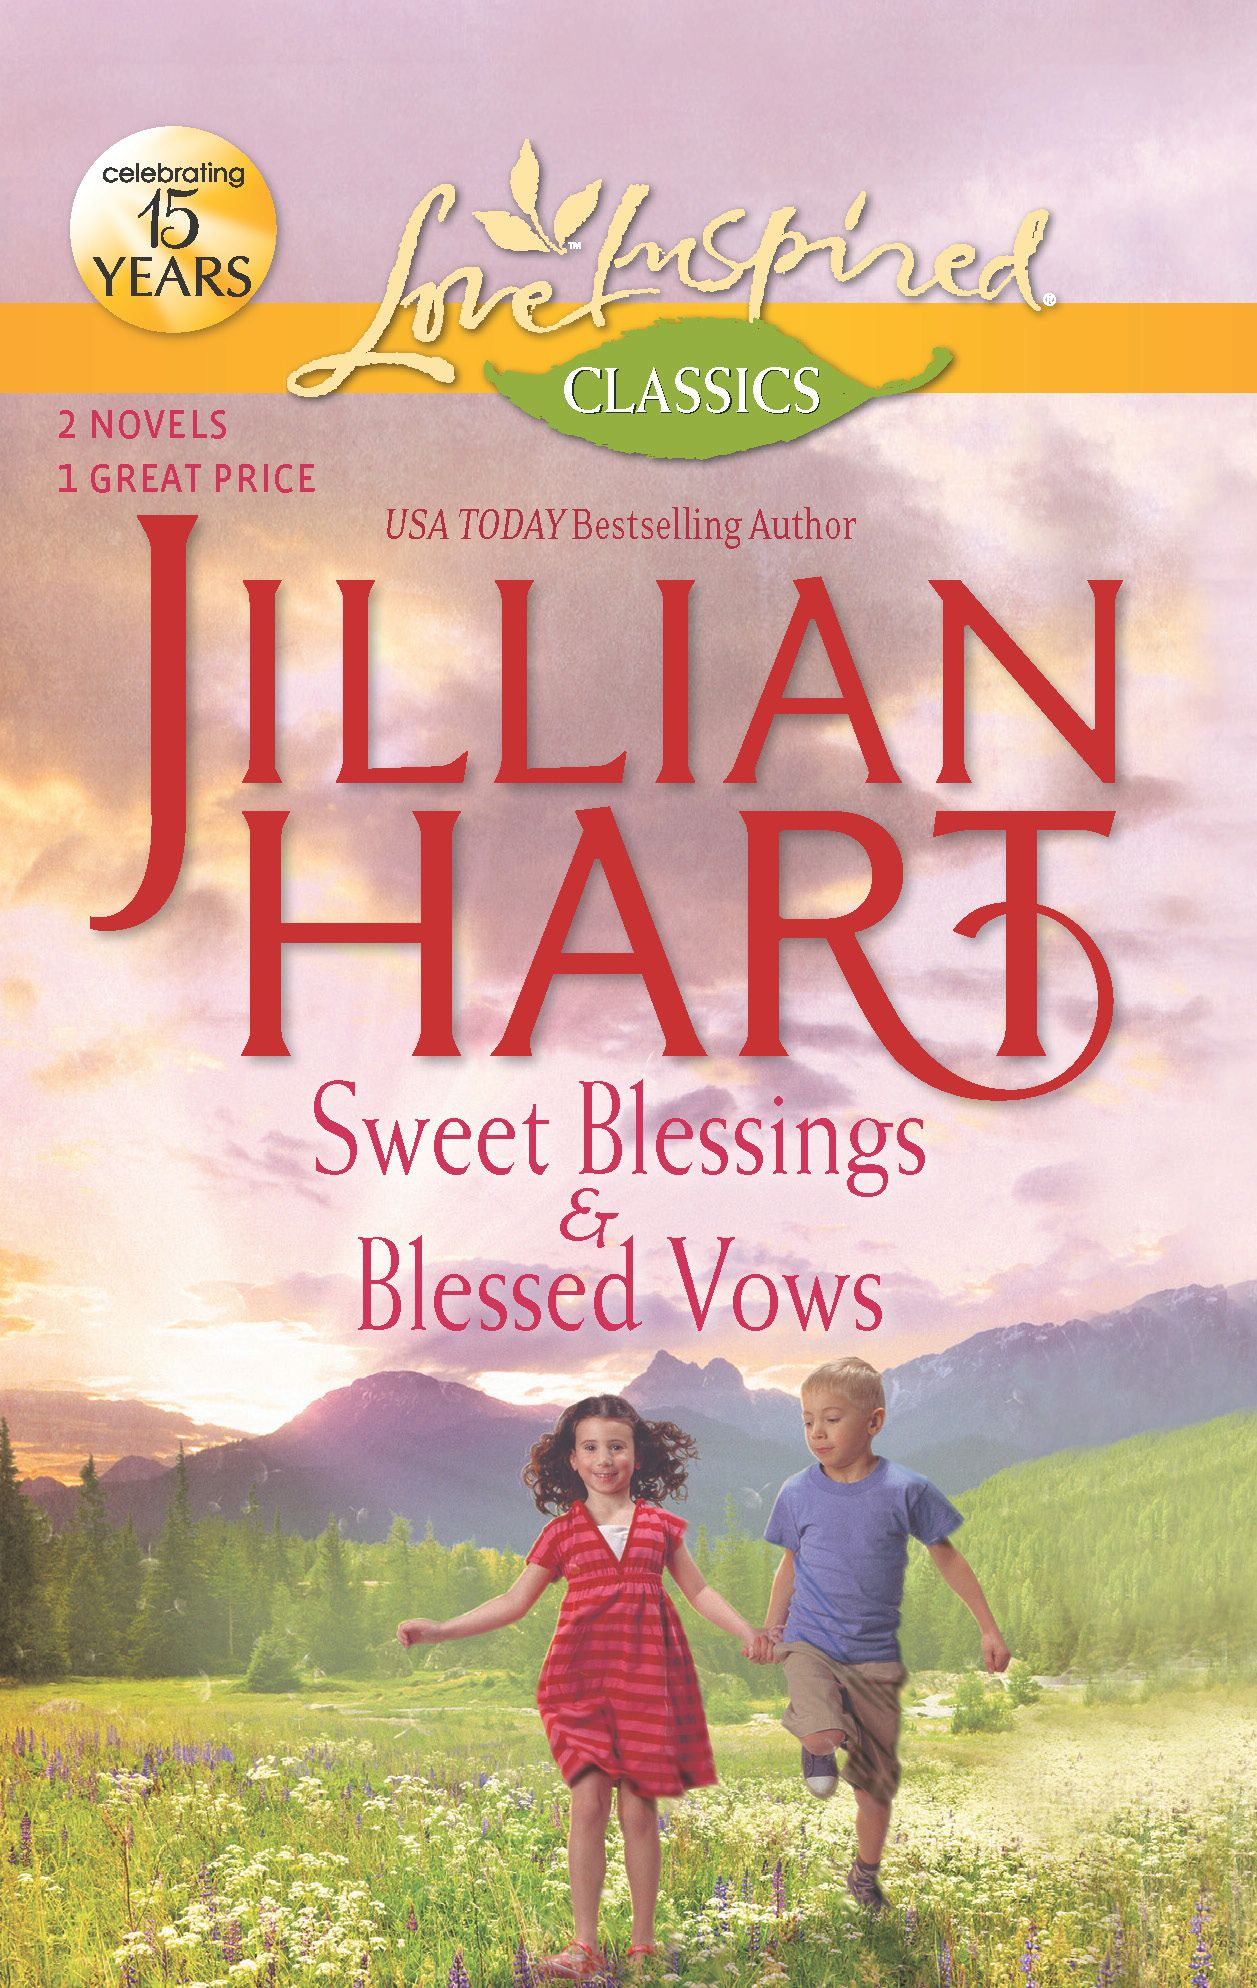 Sweet Blessings and Blessed Vows: Sweet Blessings\Blessed Vows